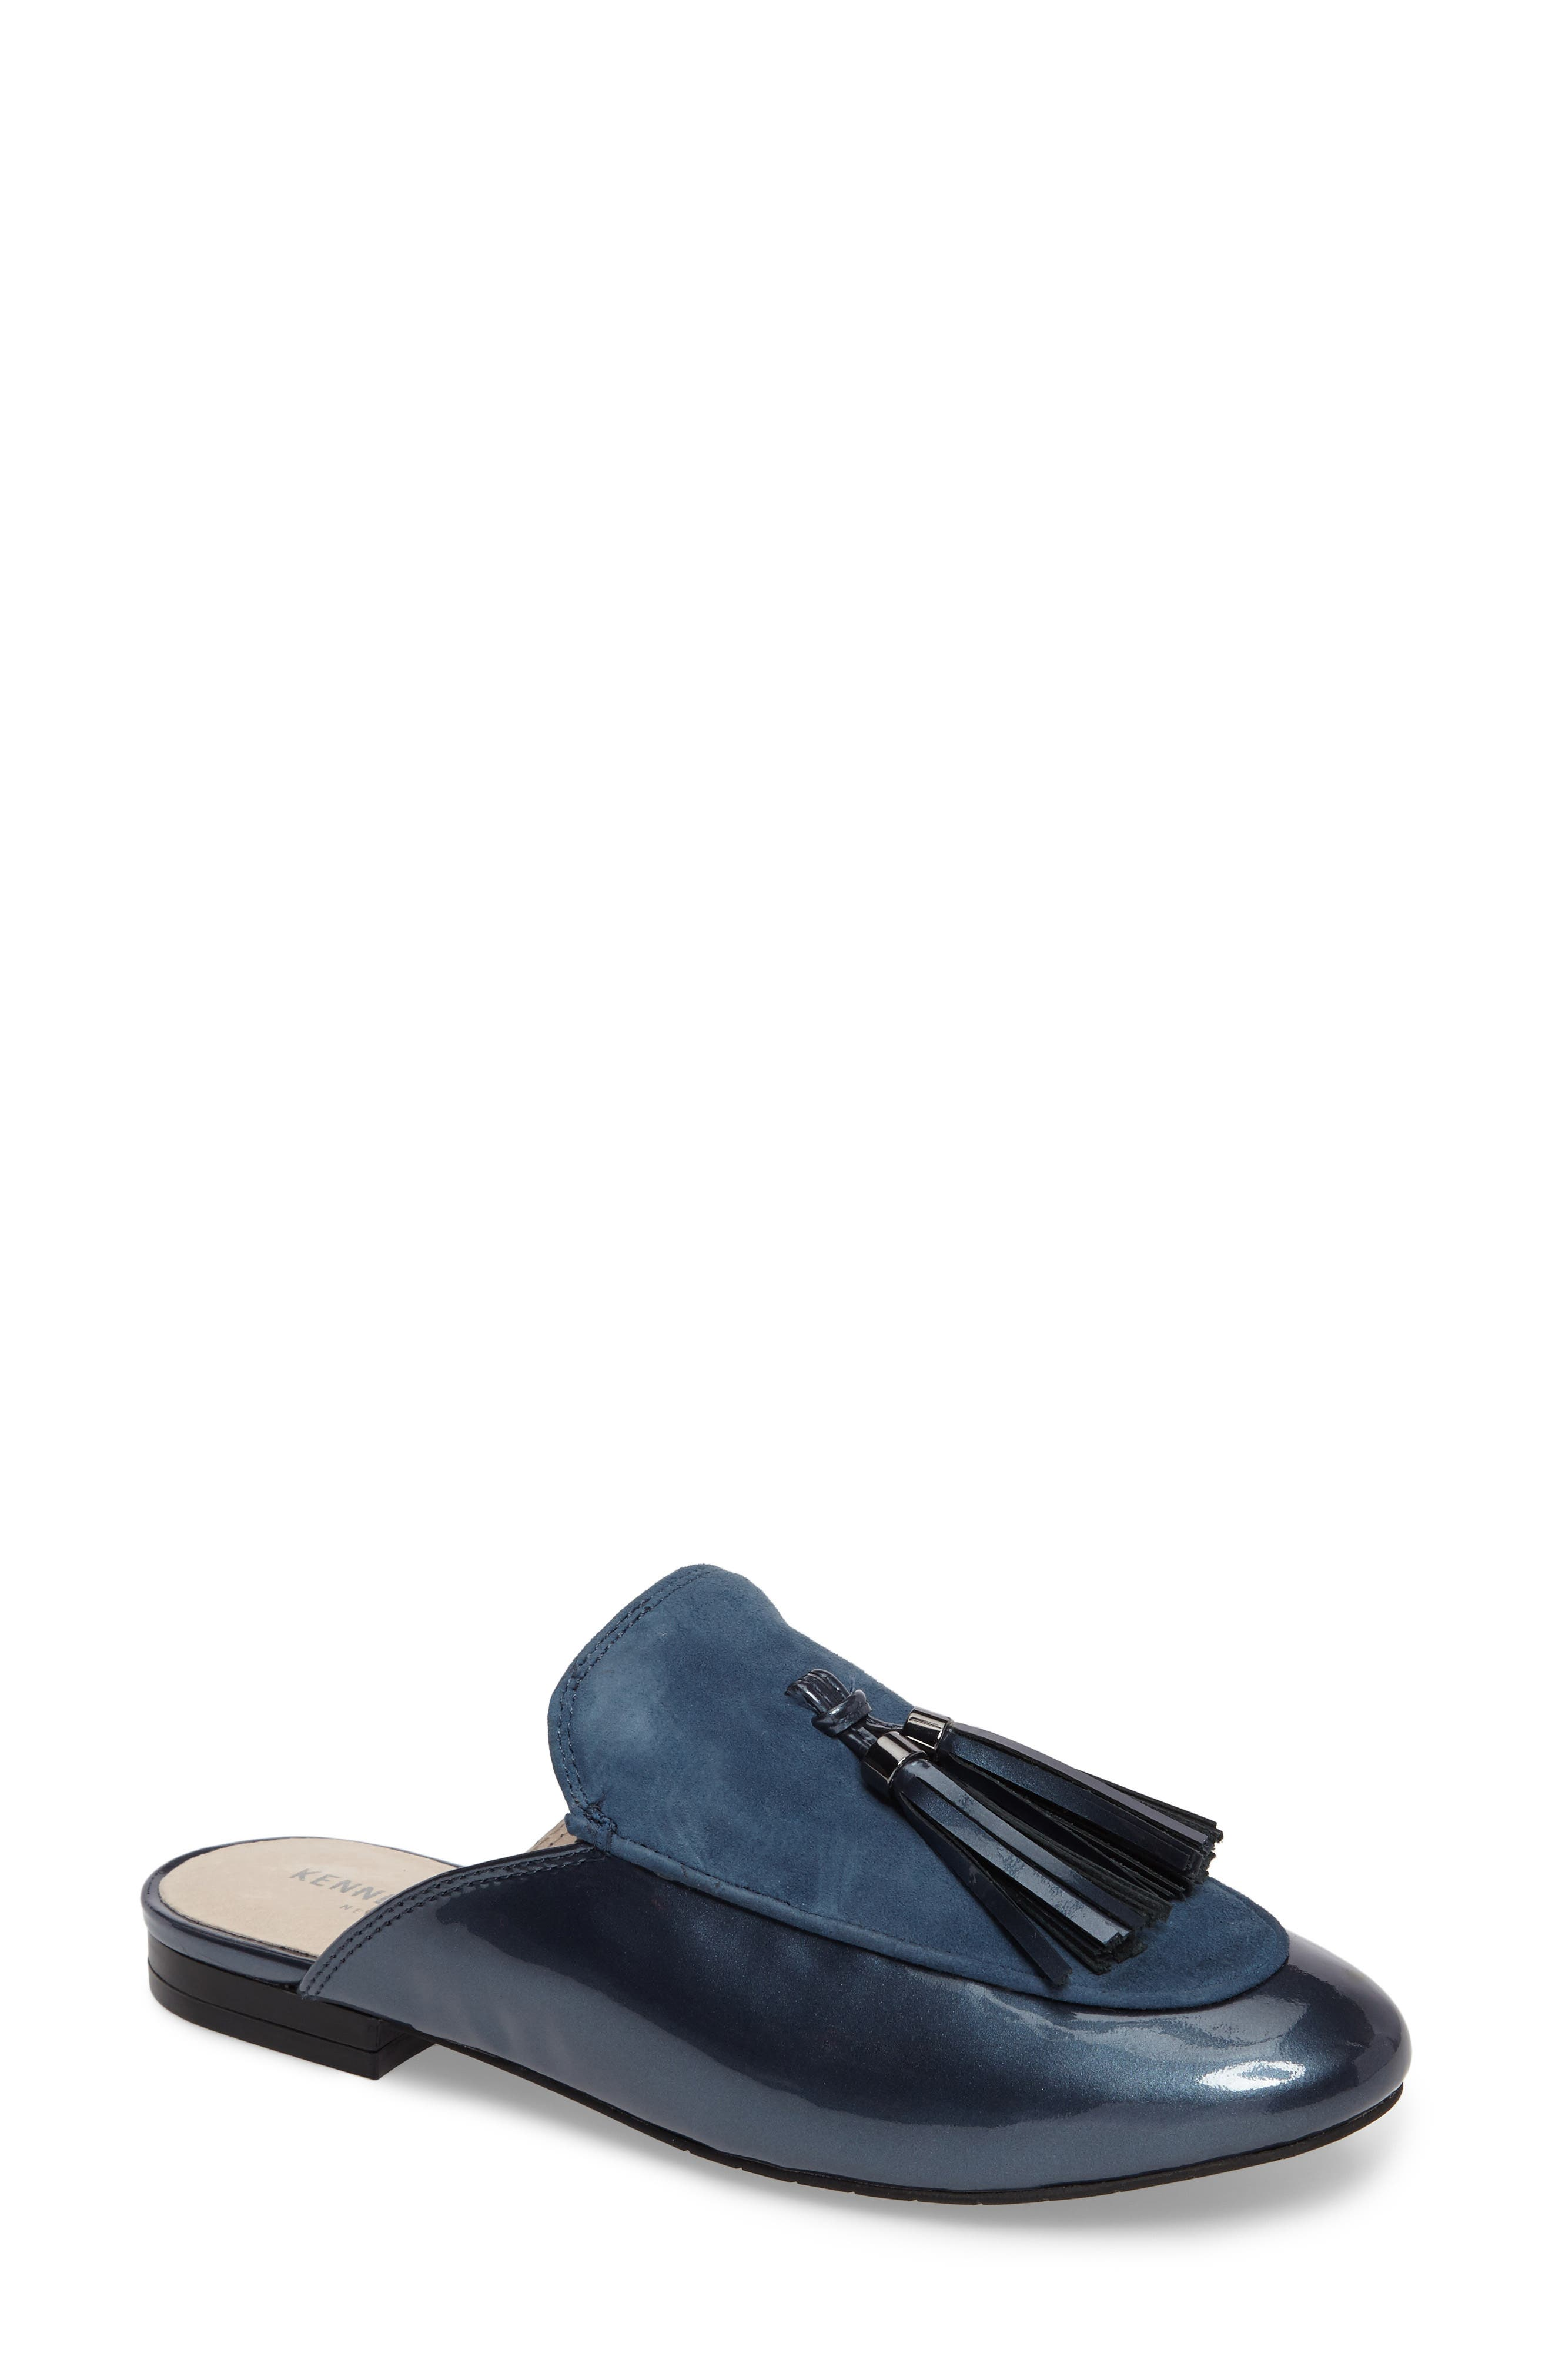 Kenneth Cole New York Whinnie Loafer Mule (Women)